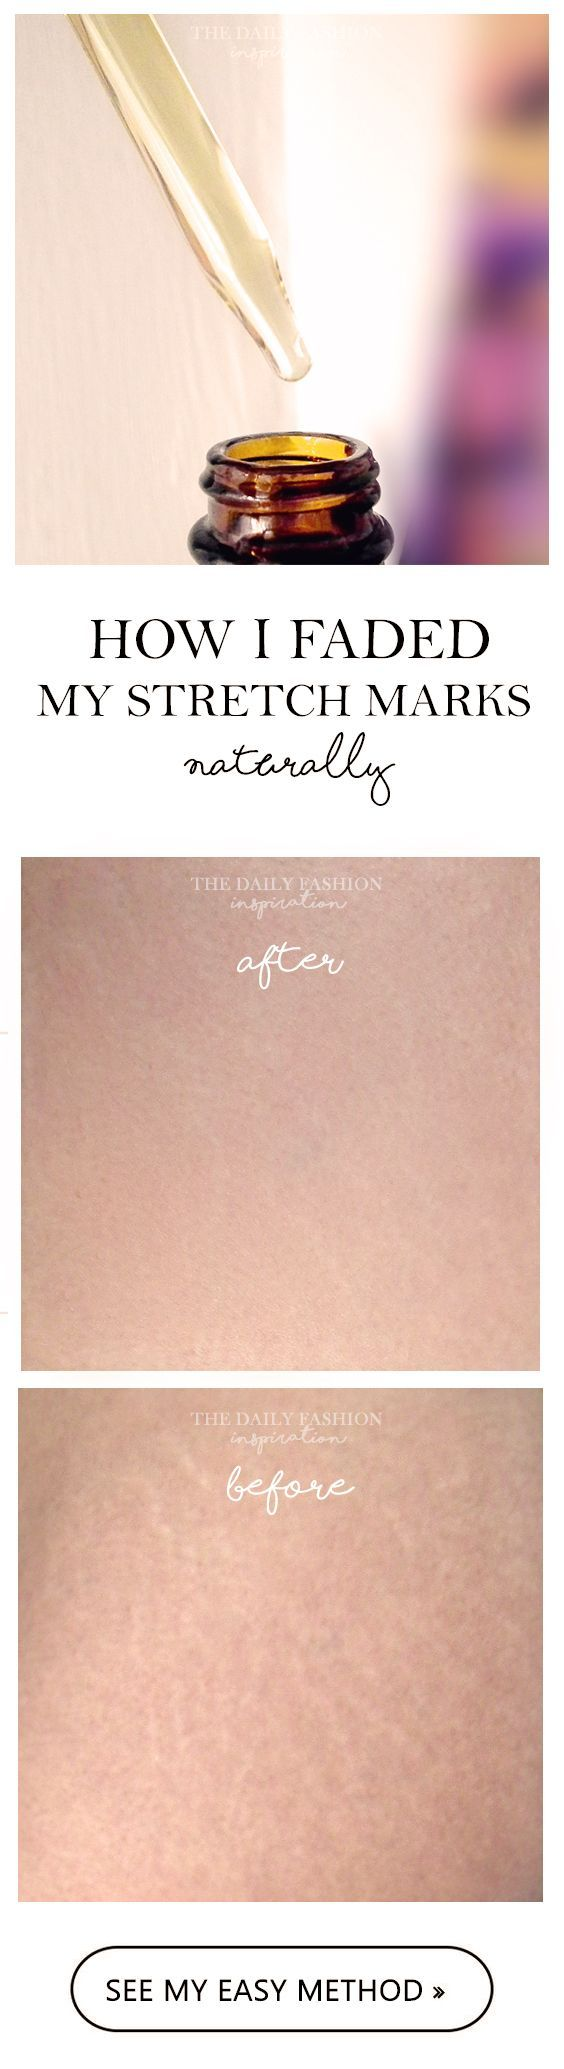 Read my easy but effective method off how I faded my stretch marks naturally, without chemical creams. Stretch mark removal is a step closed or at least fading them is possible. #stretchmarks #treatment